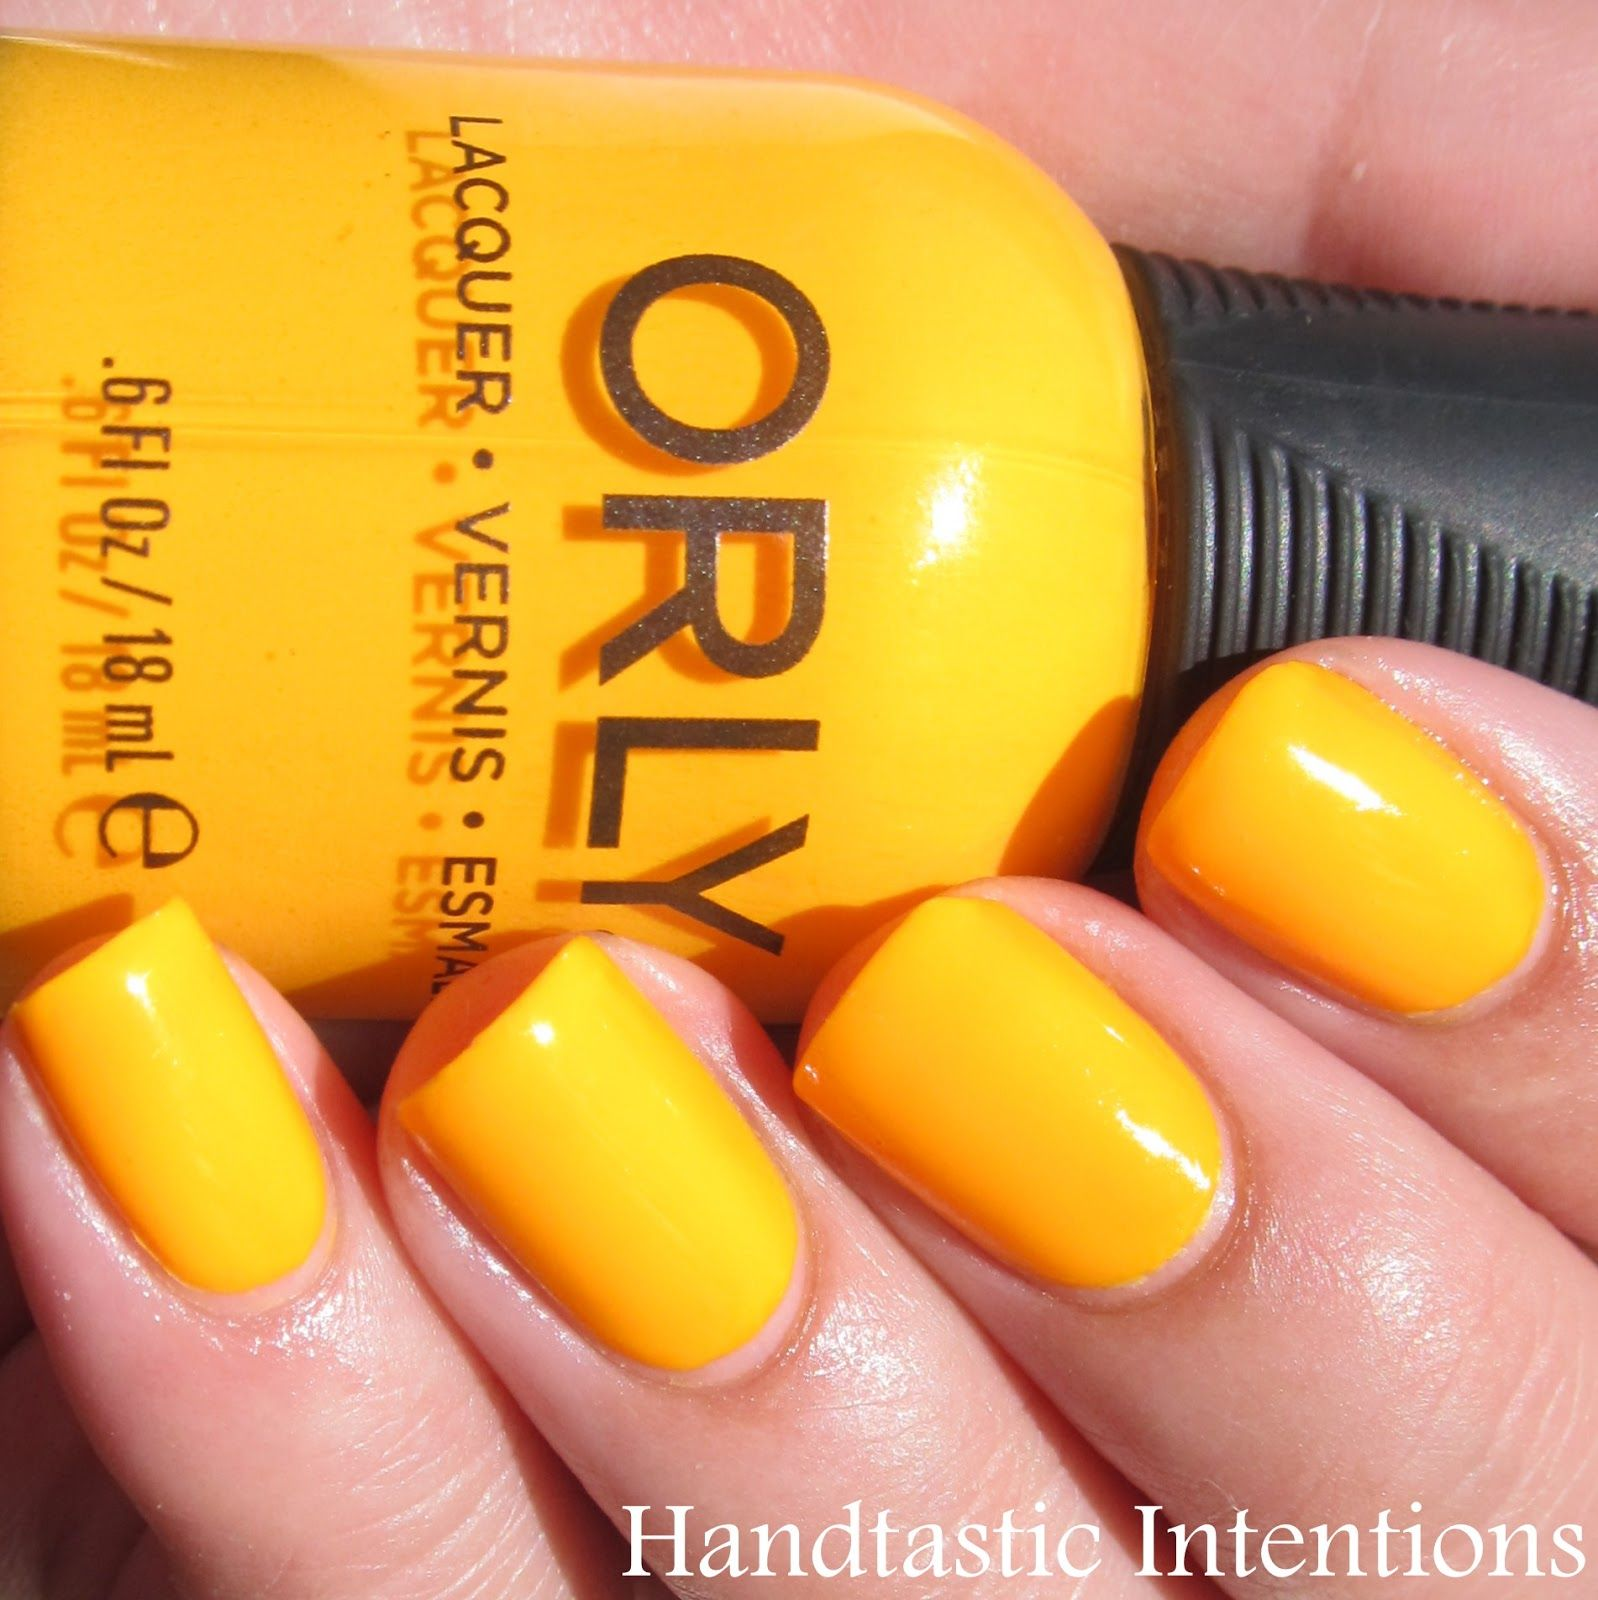 Swatch and Review of Orly Tropical Pop Nail Polish from their Baked ...